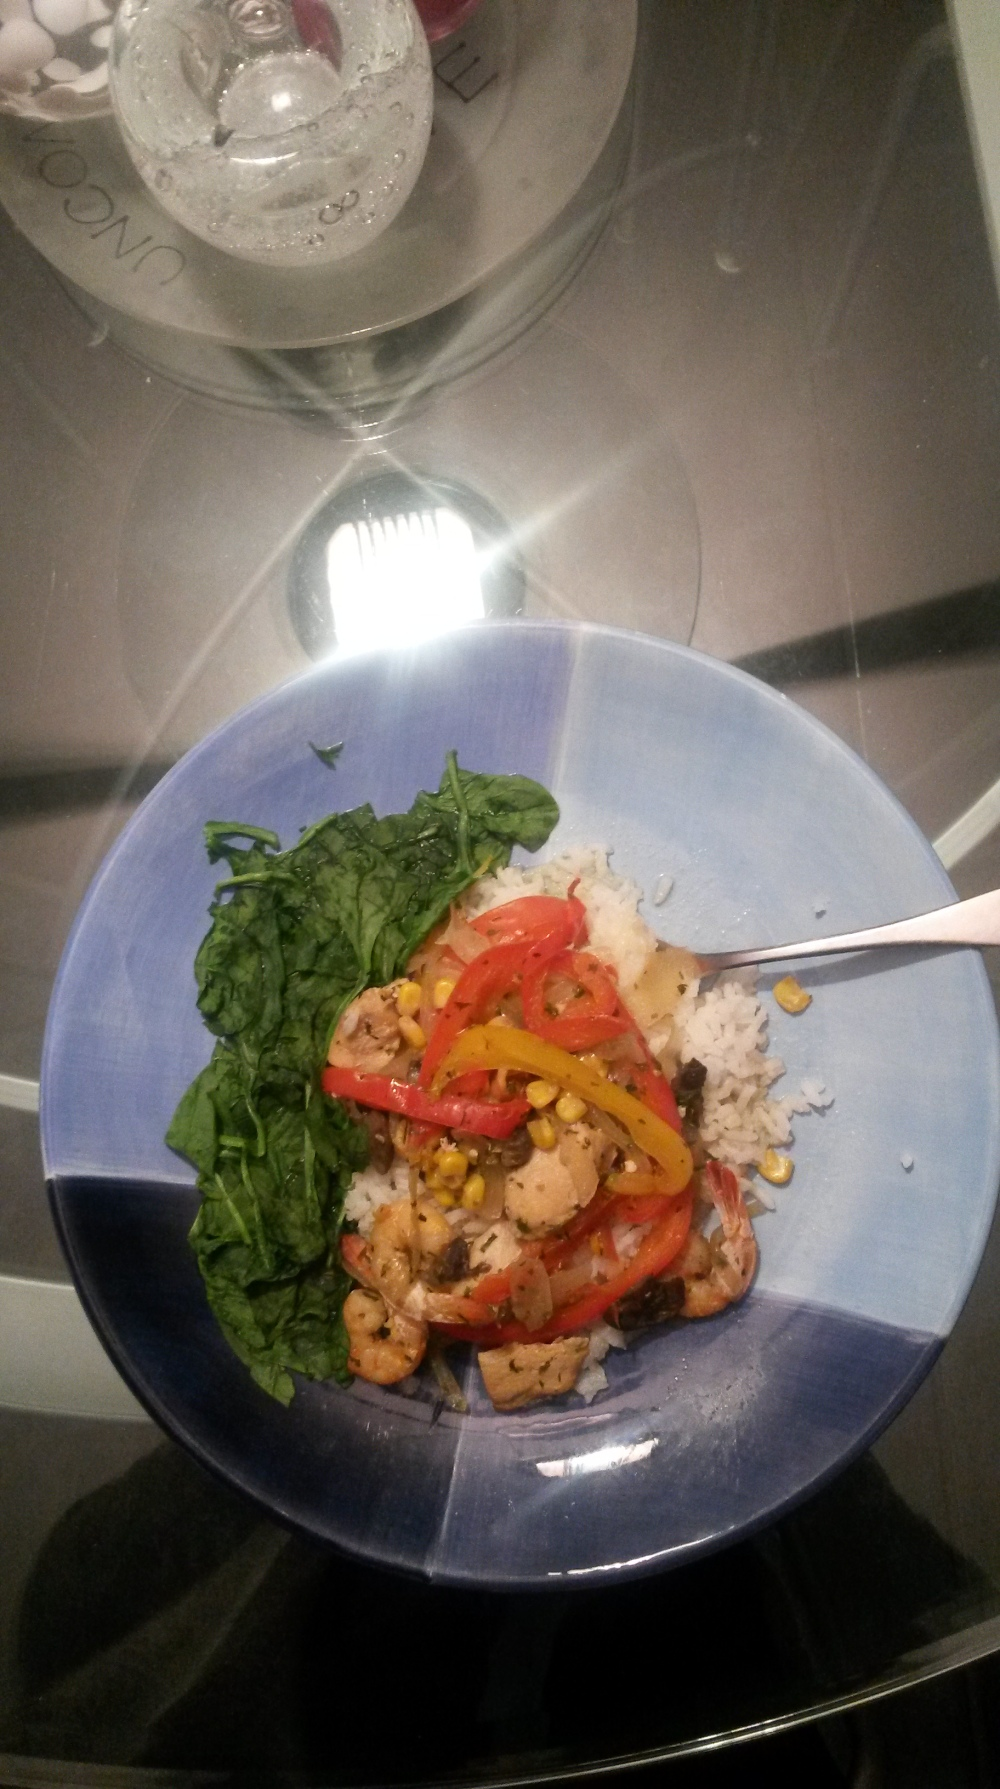 I added a side of steamed spinach for my daily dose of greens. The taste is masked by the stir fry! :)